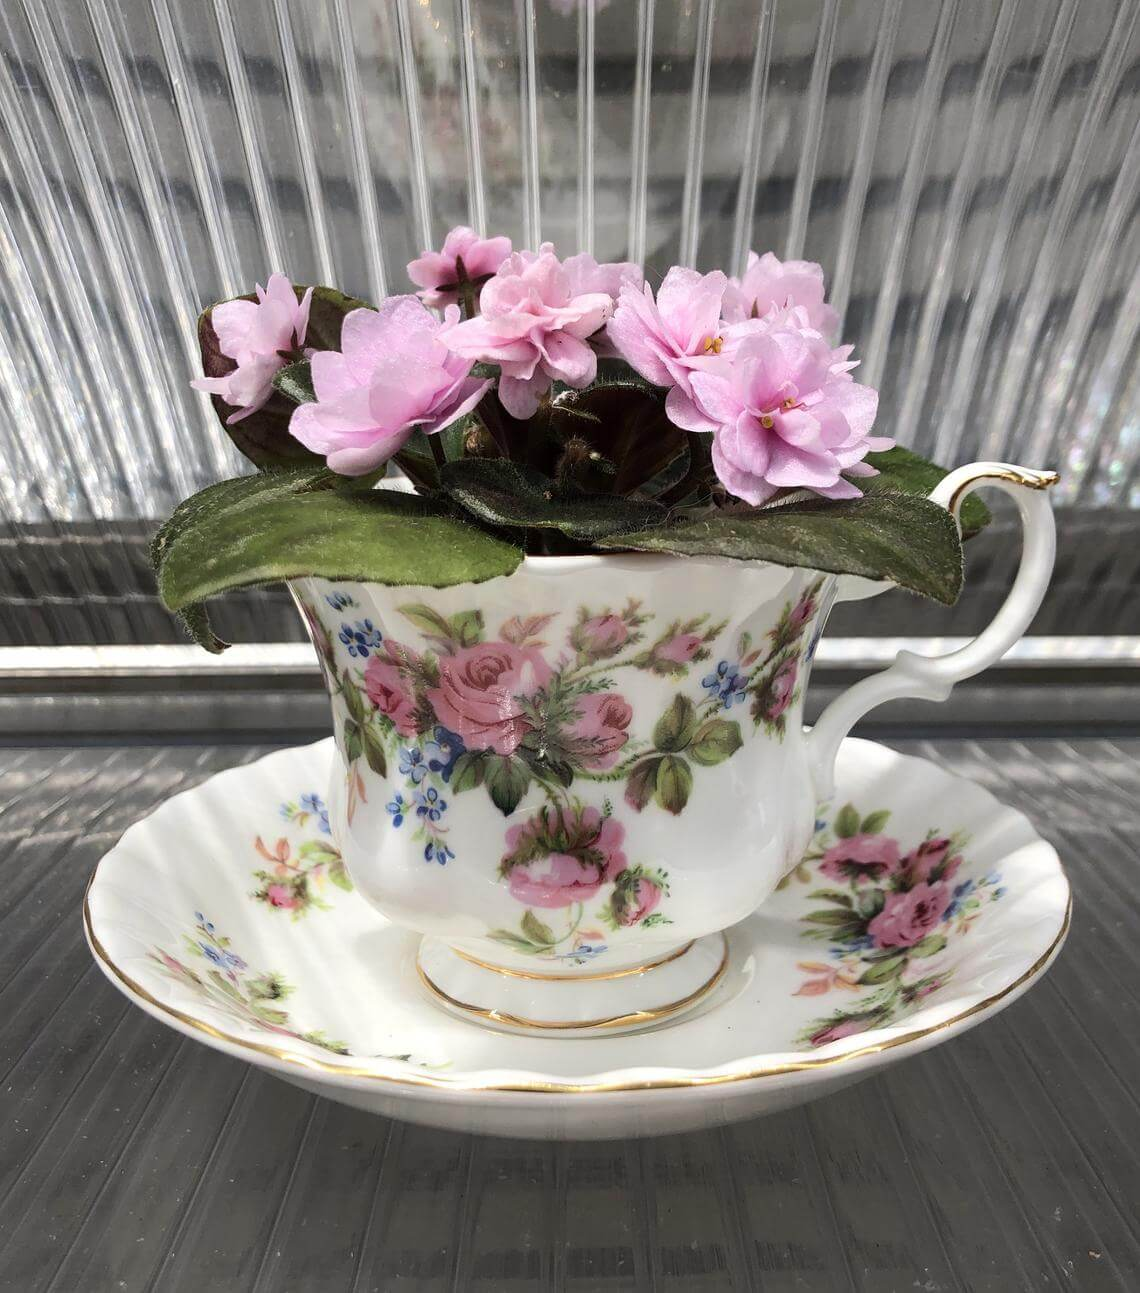 Vintage Victorian Teacup Planter Gift Idea